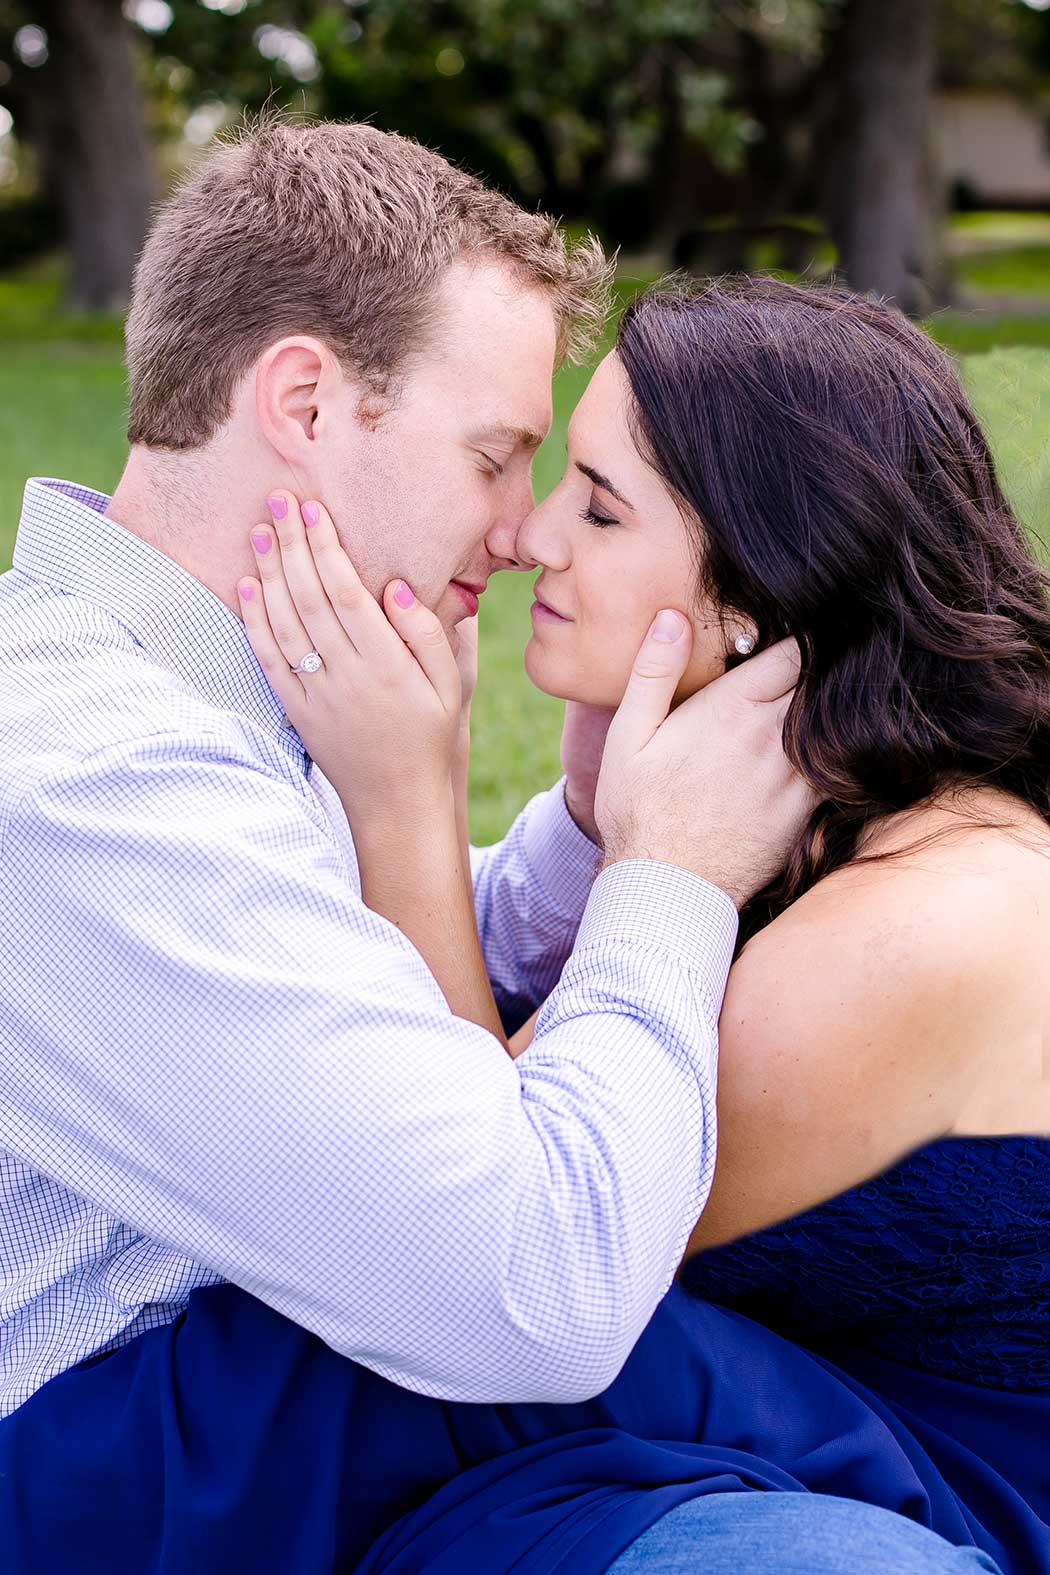 cute engagement photoshoot at robbins preserve park | romantic couples' photoshoot with formal dress